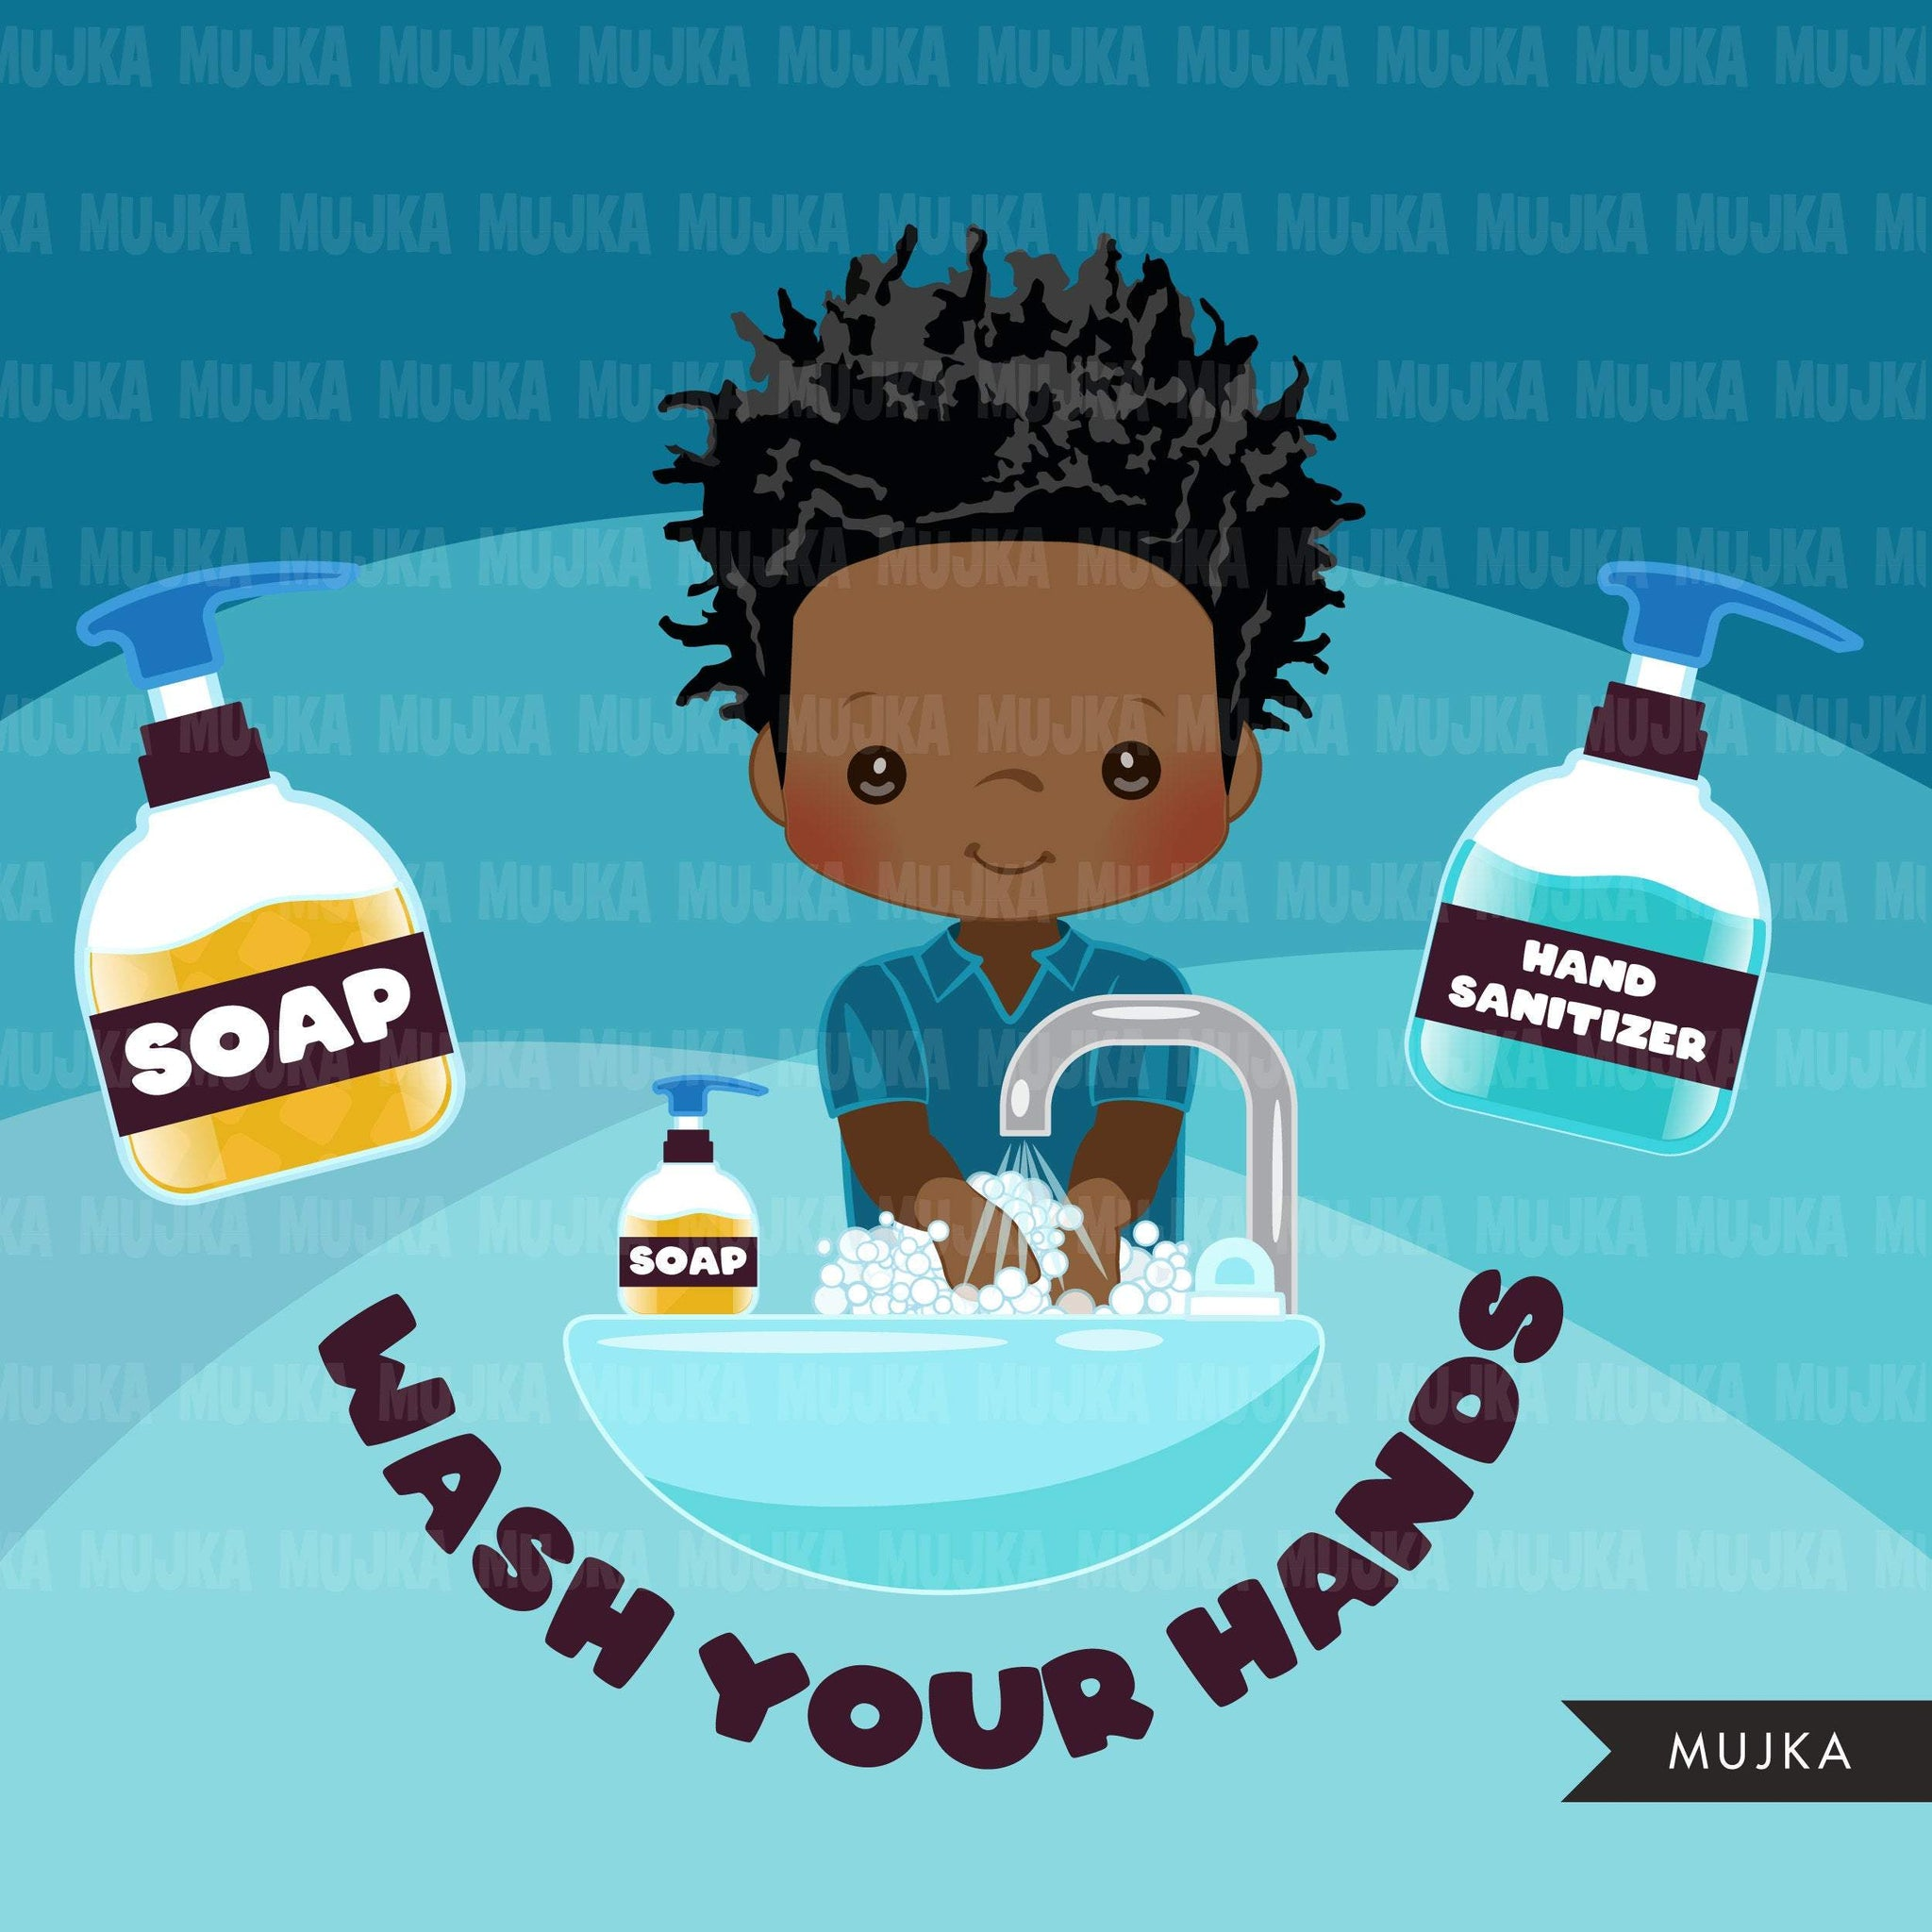 Hand washing Clipart, black boys, hand sanitizer, bathroom chores, cleaning, covid 19, corona virus, social distancing graphics